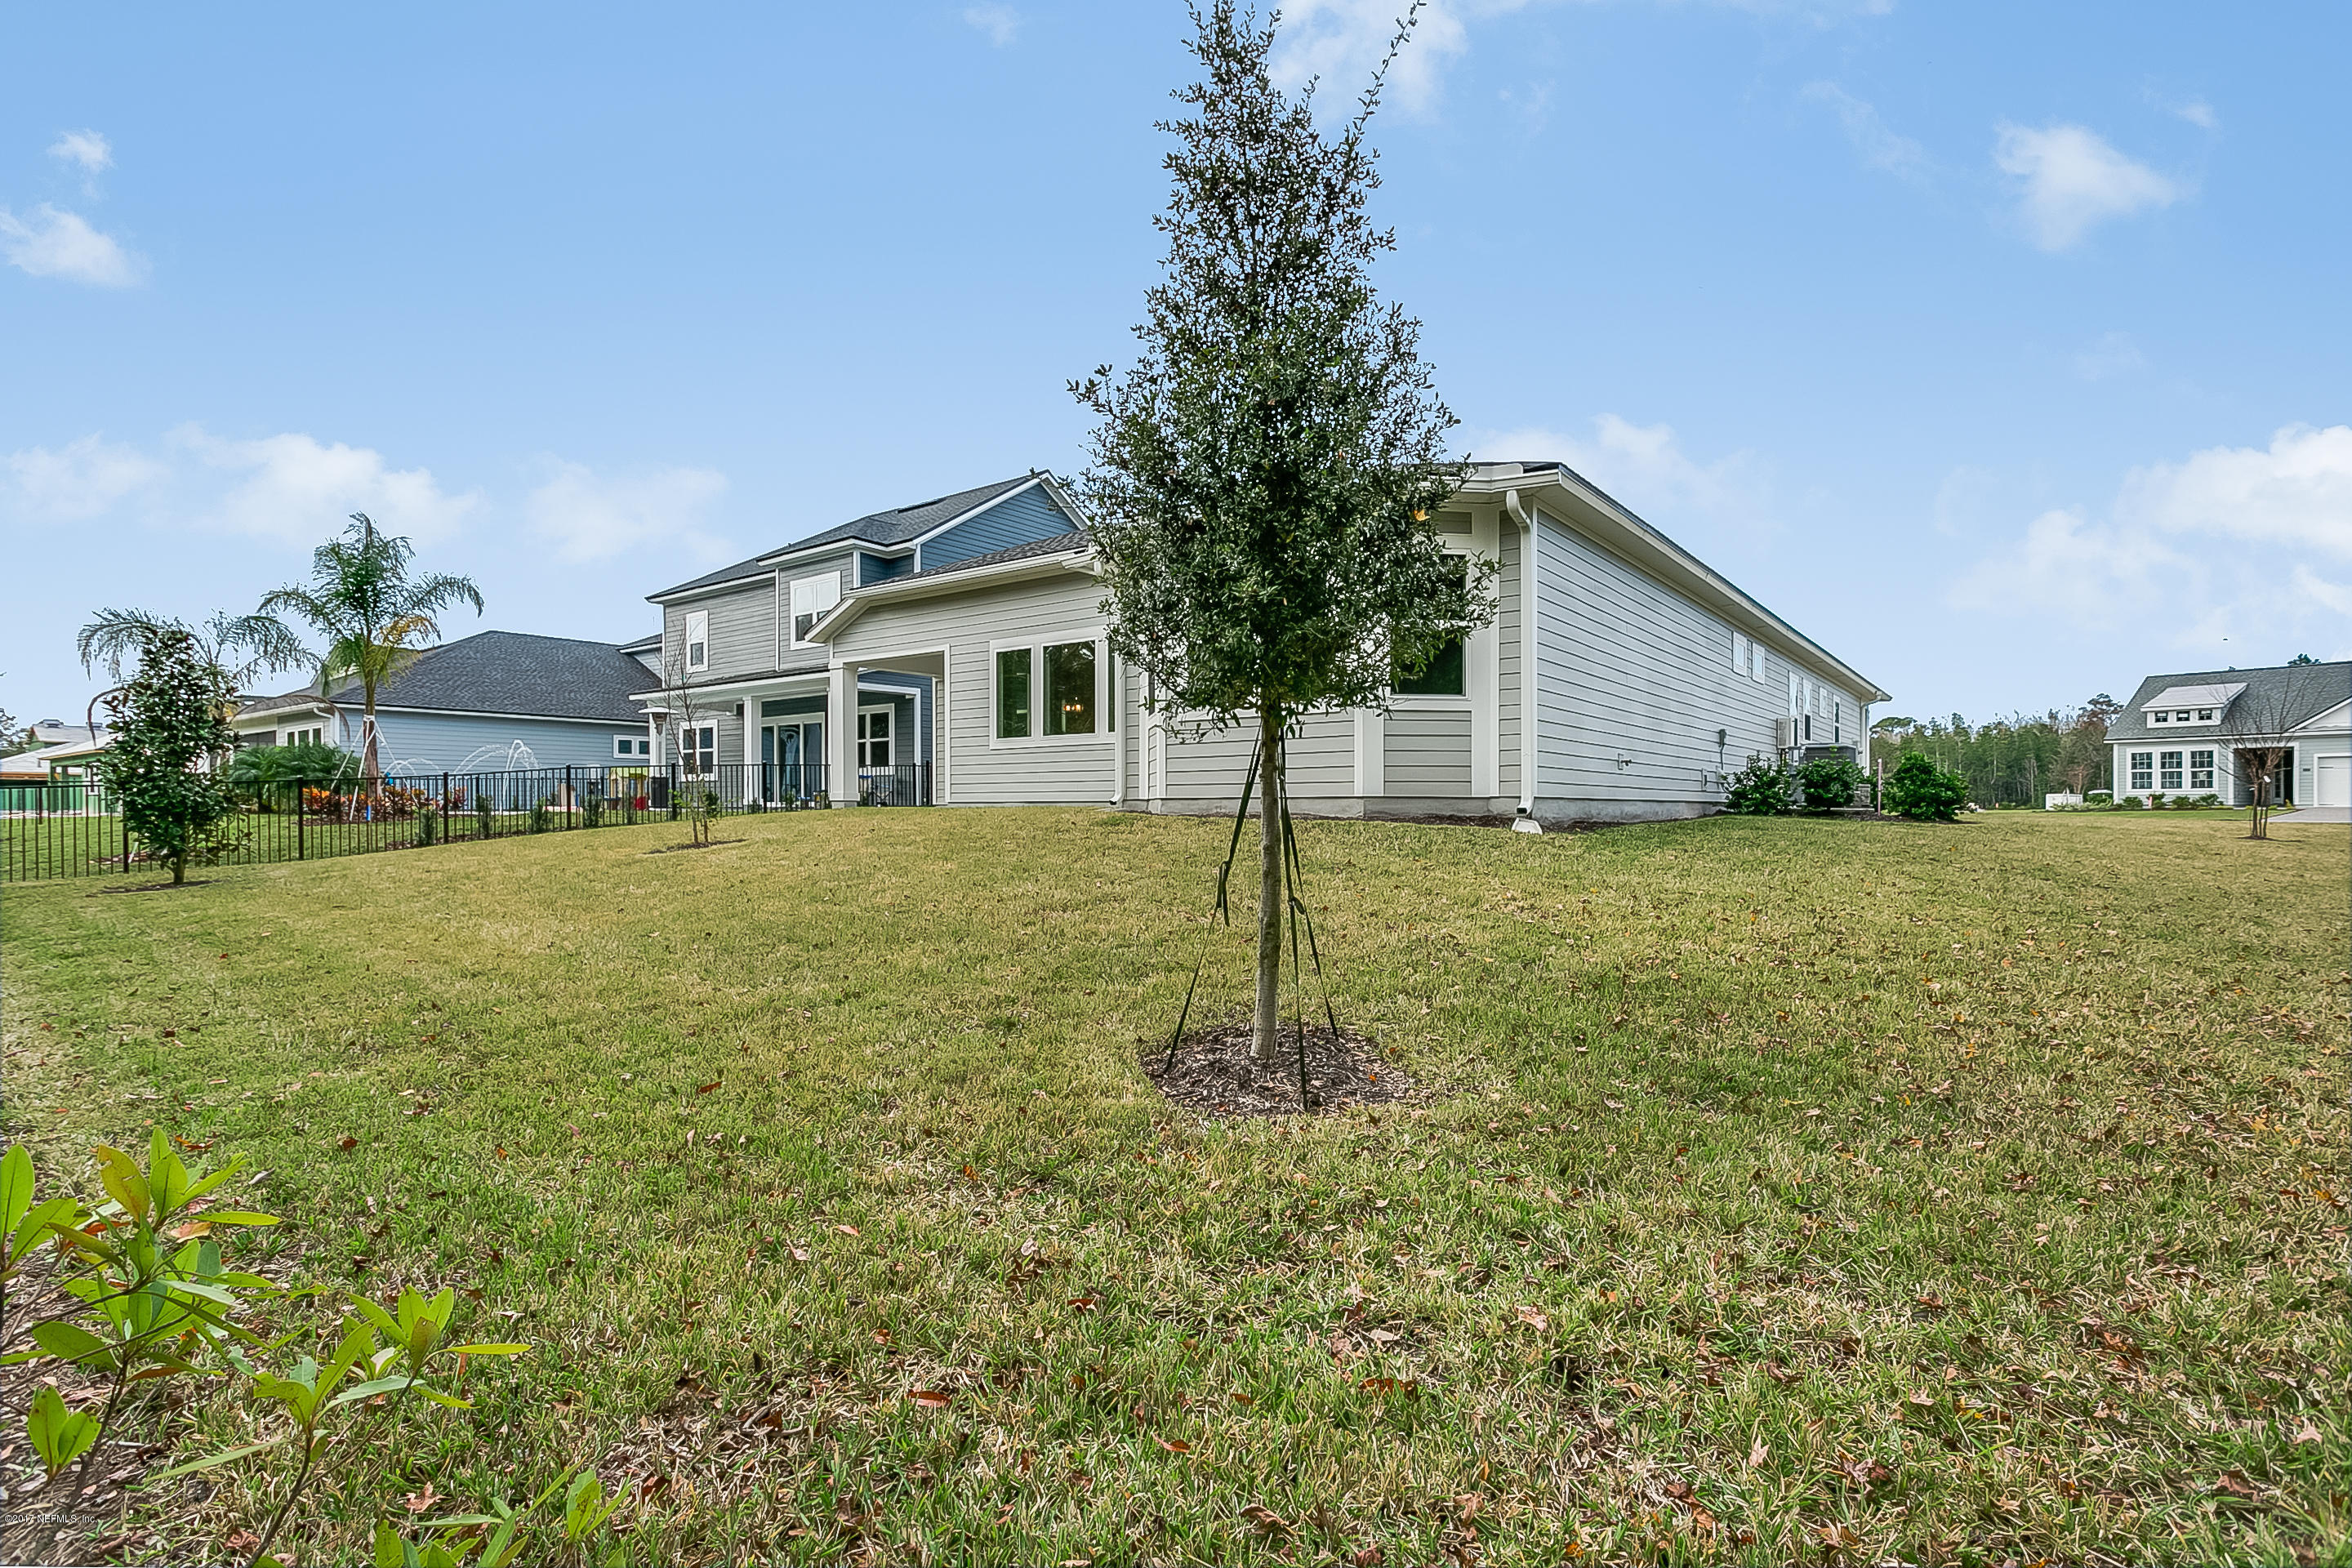 117 FRESHWATER, ST JOHNS, FLORIDA 32259, 3 Bedrooms Bedrooms, ,2 BathroomsBathrooms,Residential - single family,For sale,FRESHWATER,913552